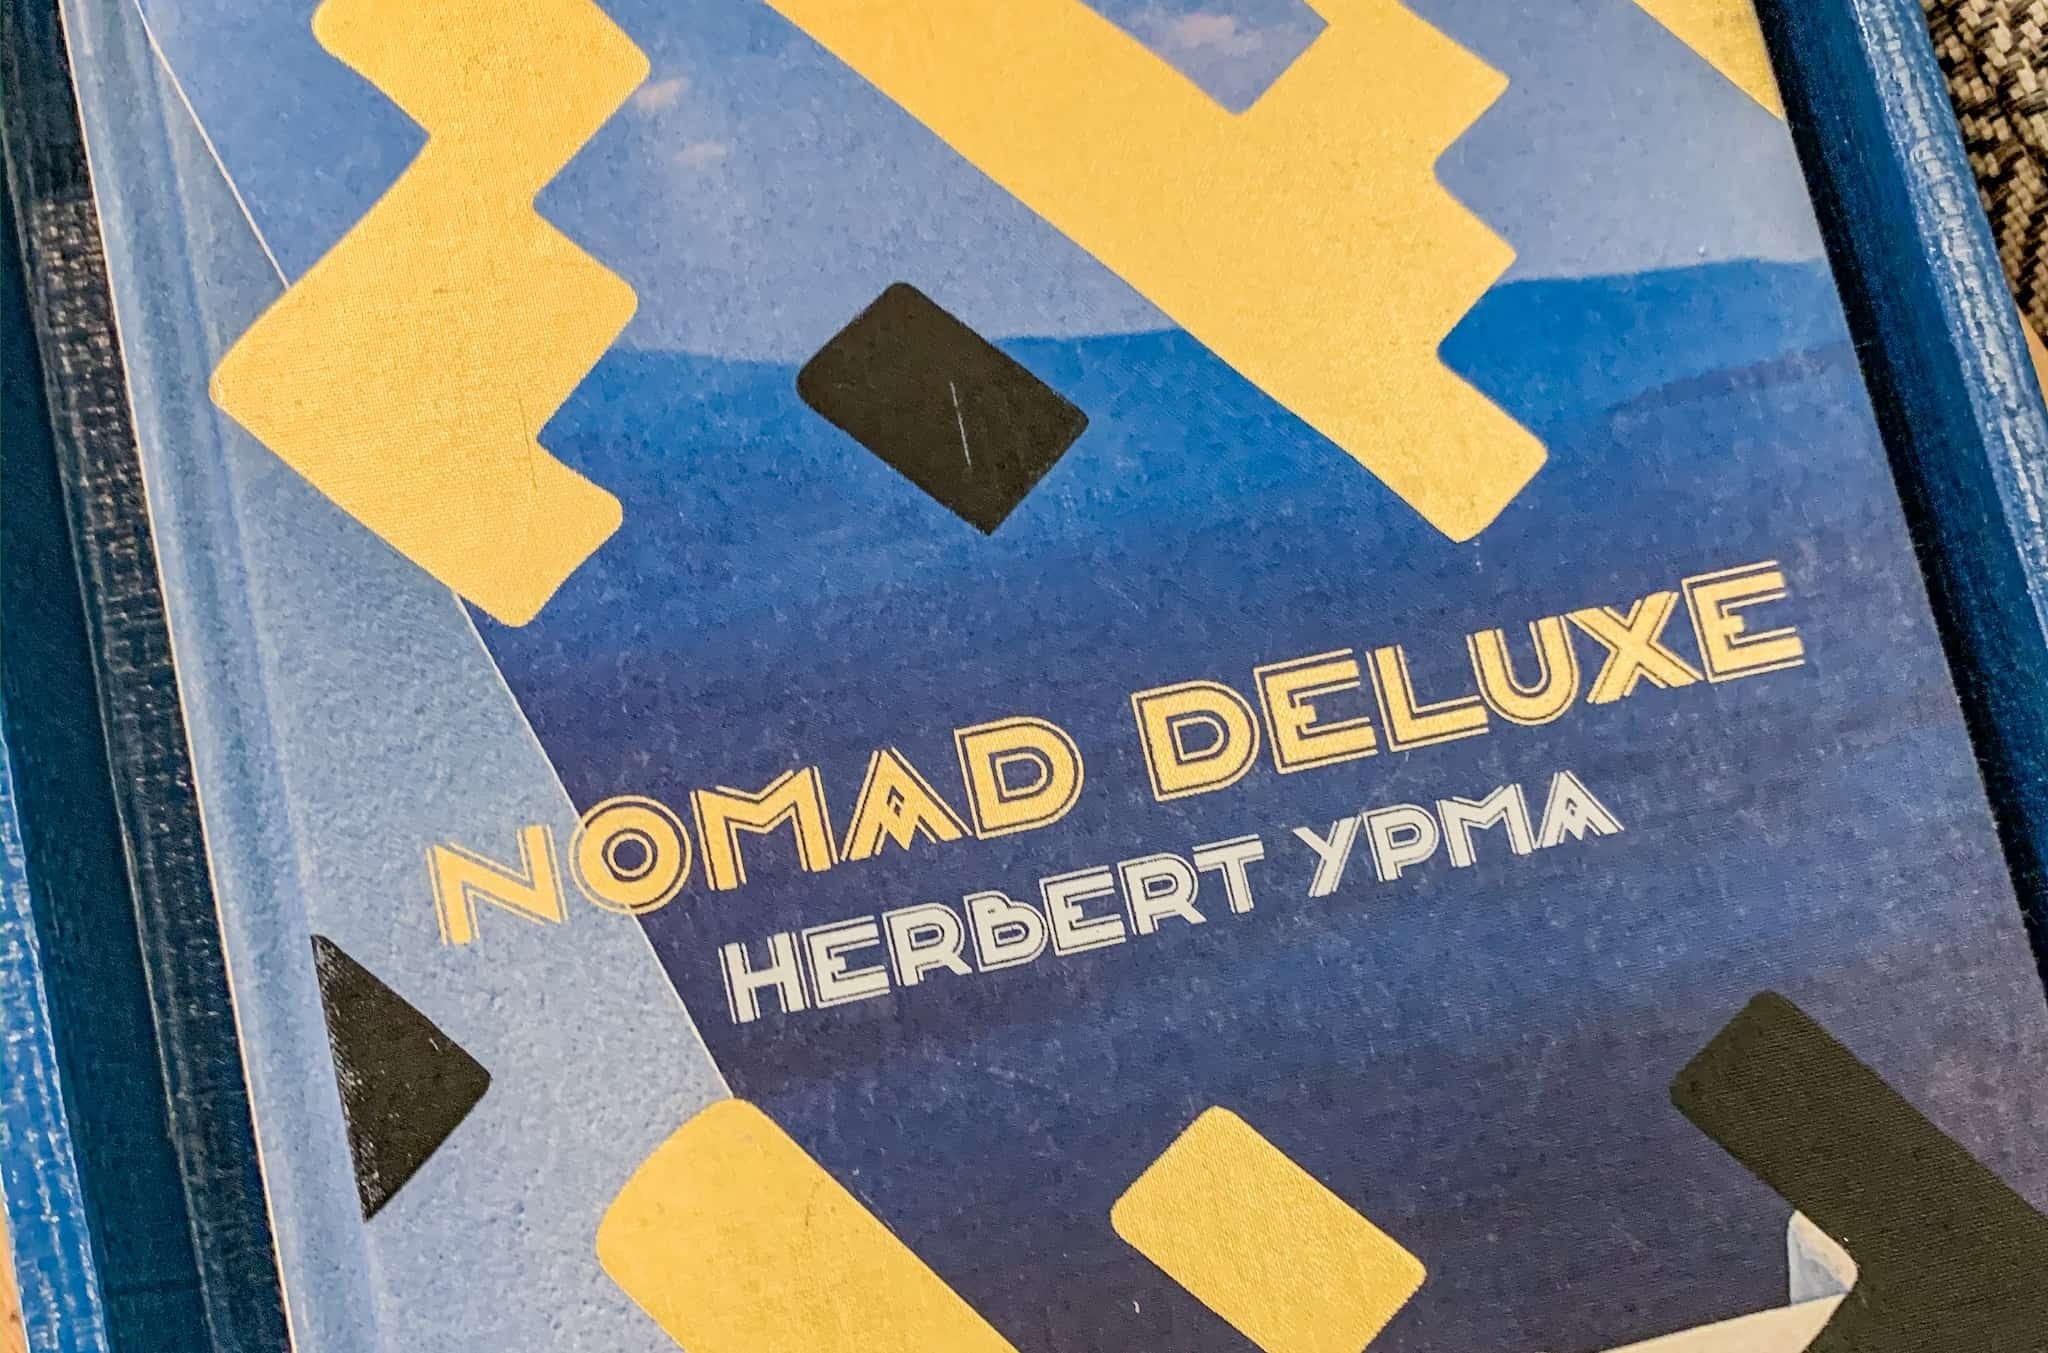 Nomad Deluxe Book